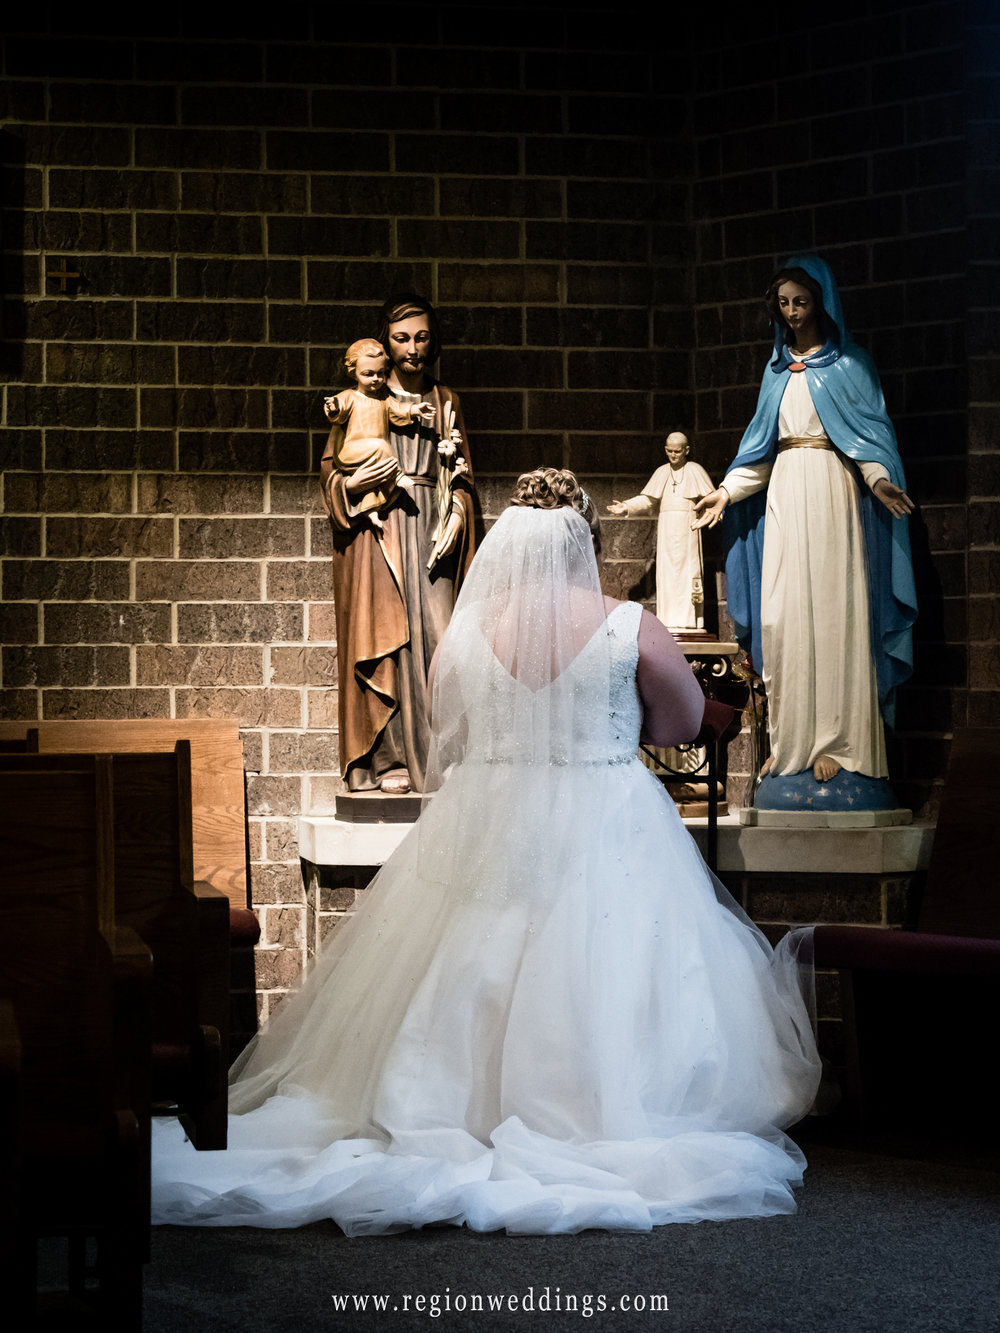 Bride kneeling in church.